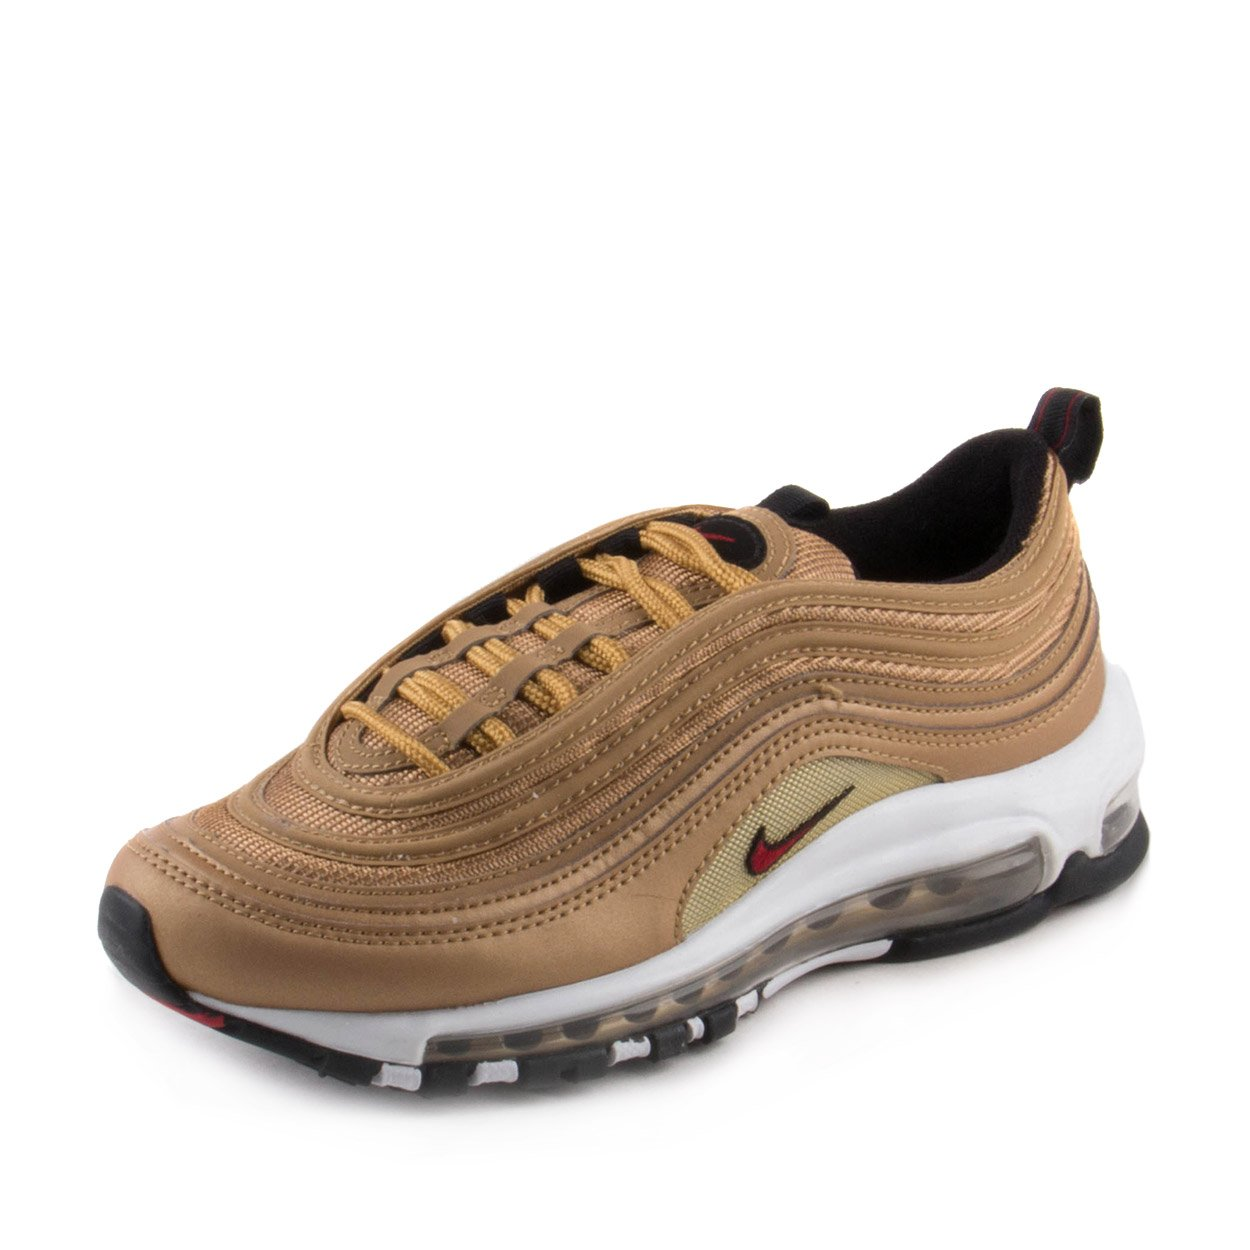 official photos fcef1 c5627 Nike Womens Air Max 97 Og QS Running Trainers 885691 Sneakers Shoes (UK 3.5  US 6 EU 36.5, Metallic Gold Varisty red 700)